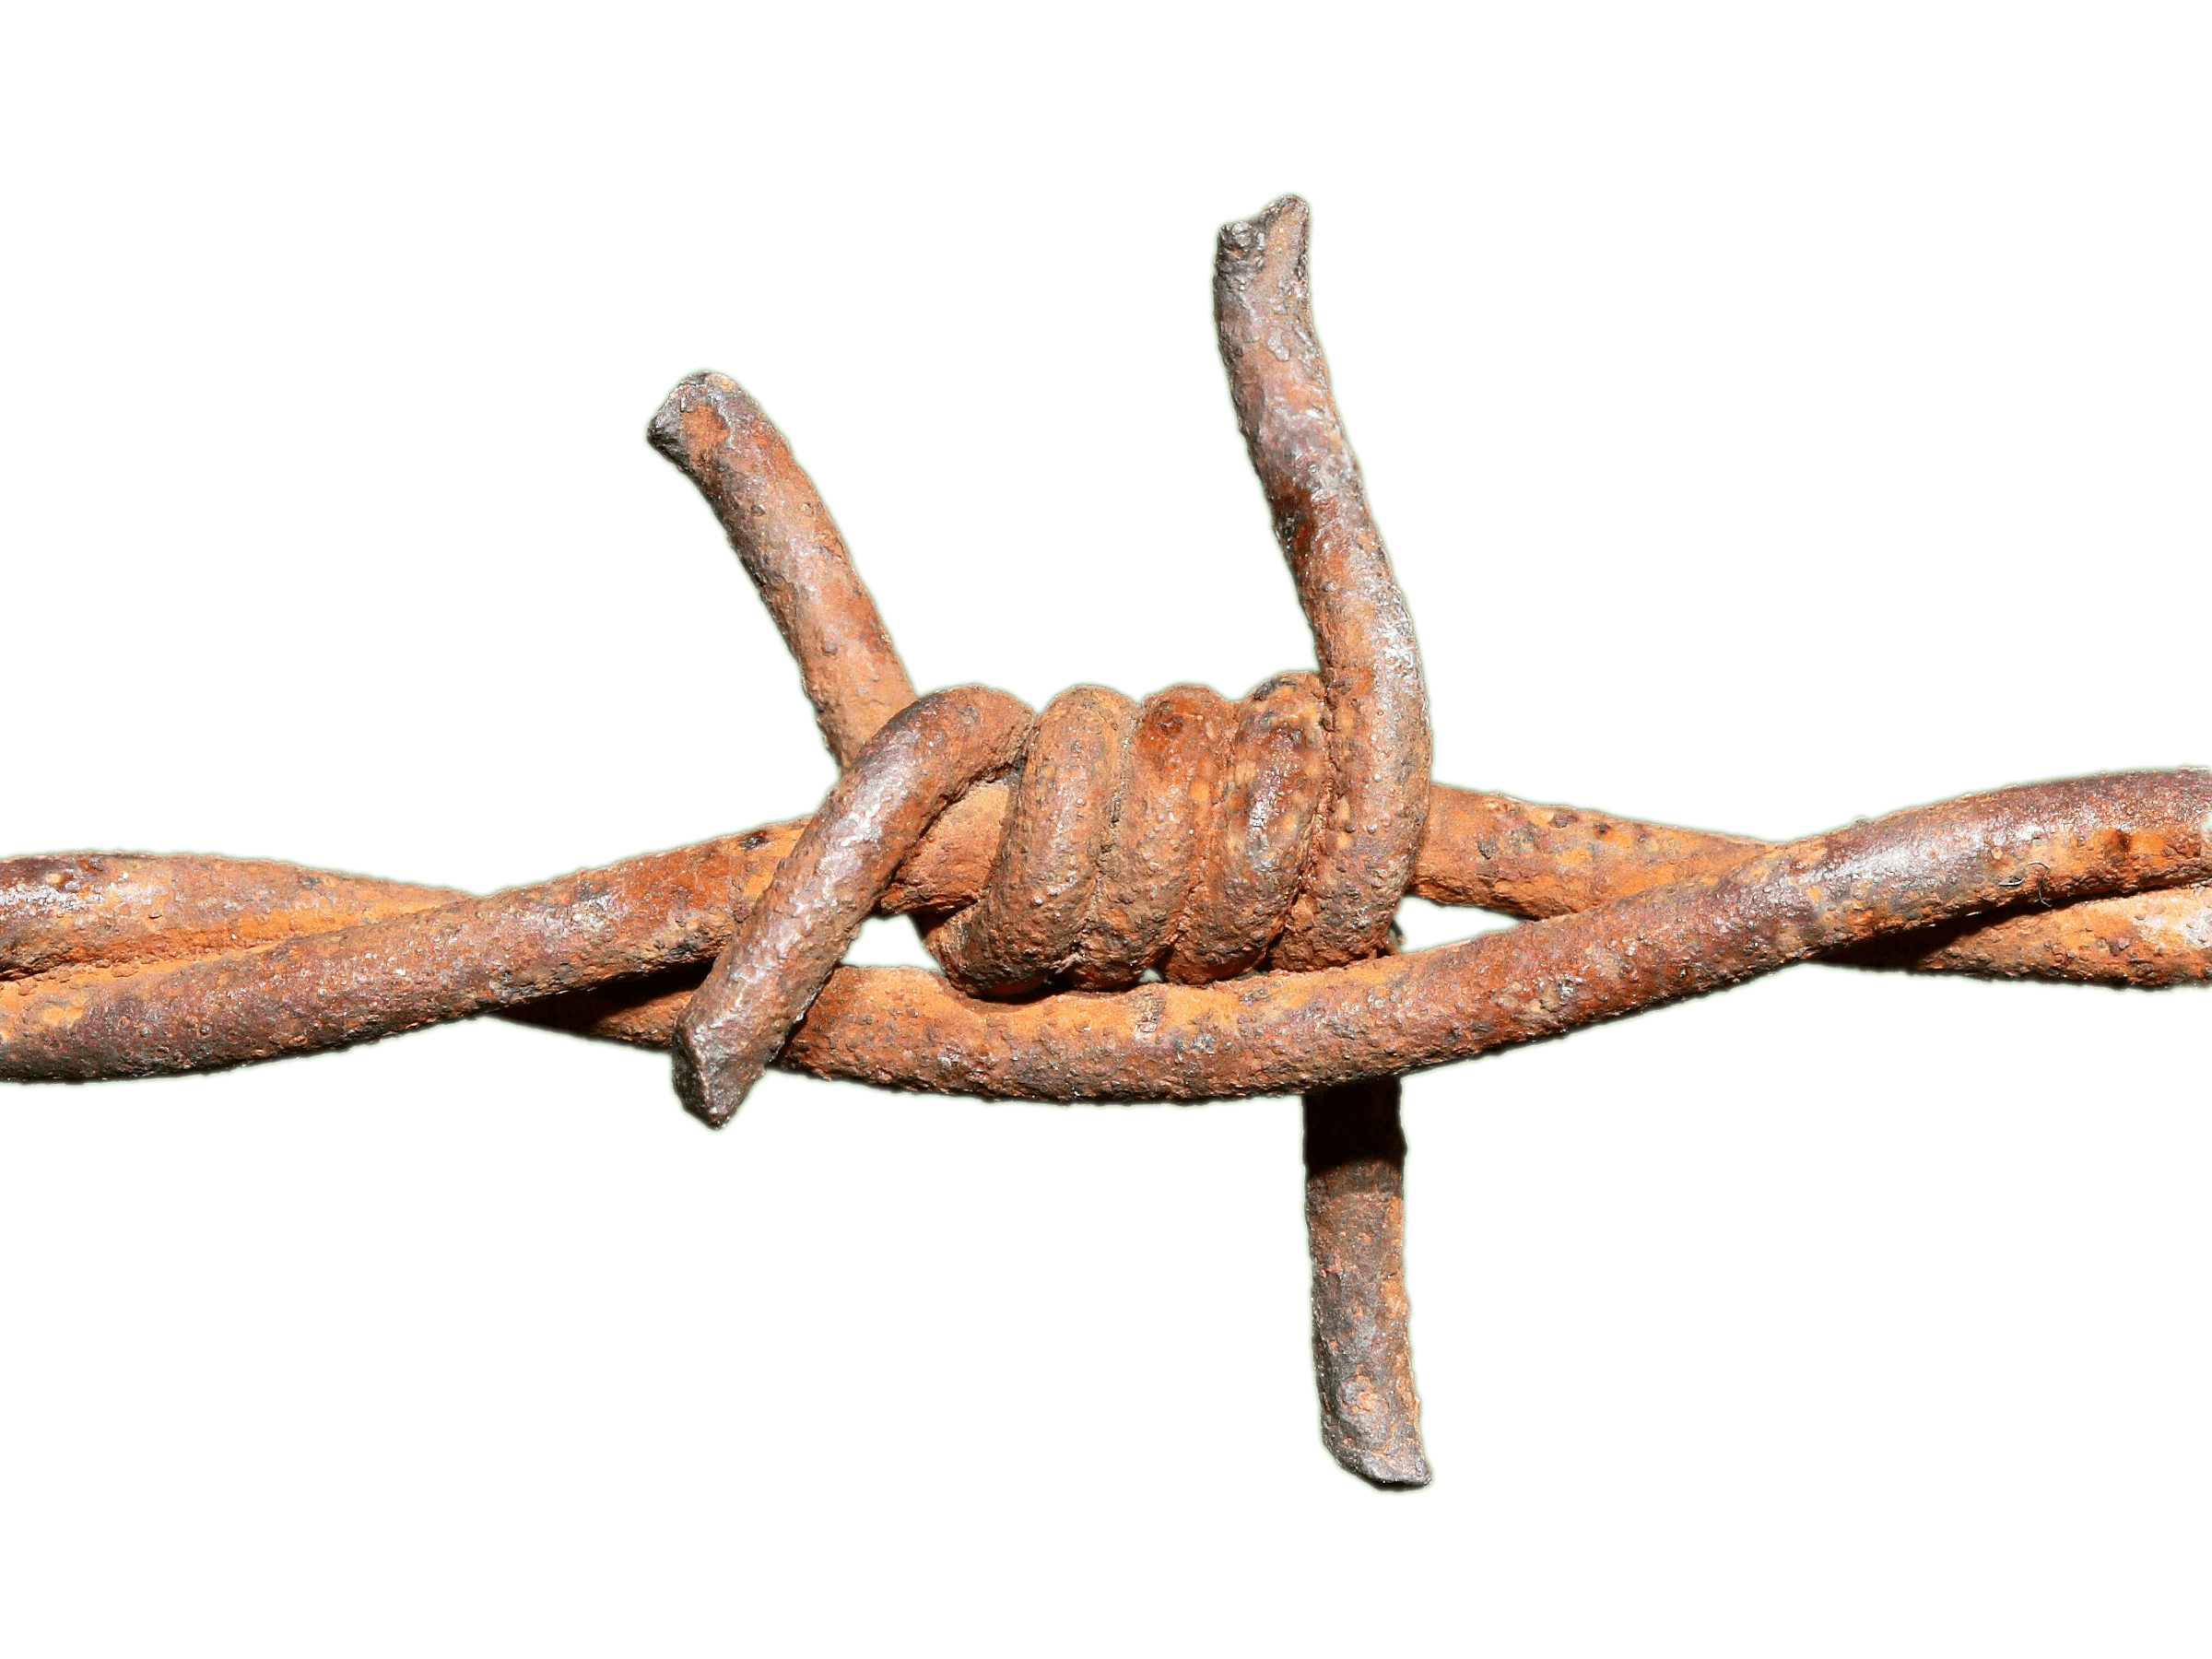 Rusted knot transparent png. Fence clipart barbed wire fence